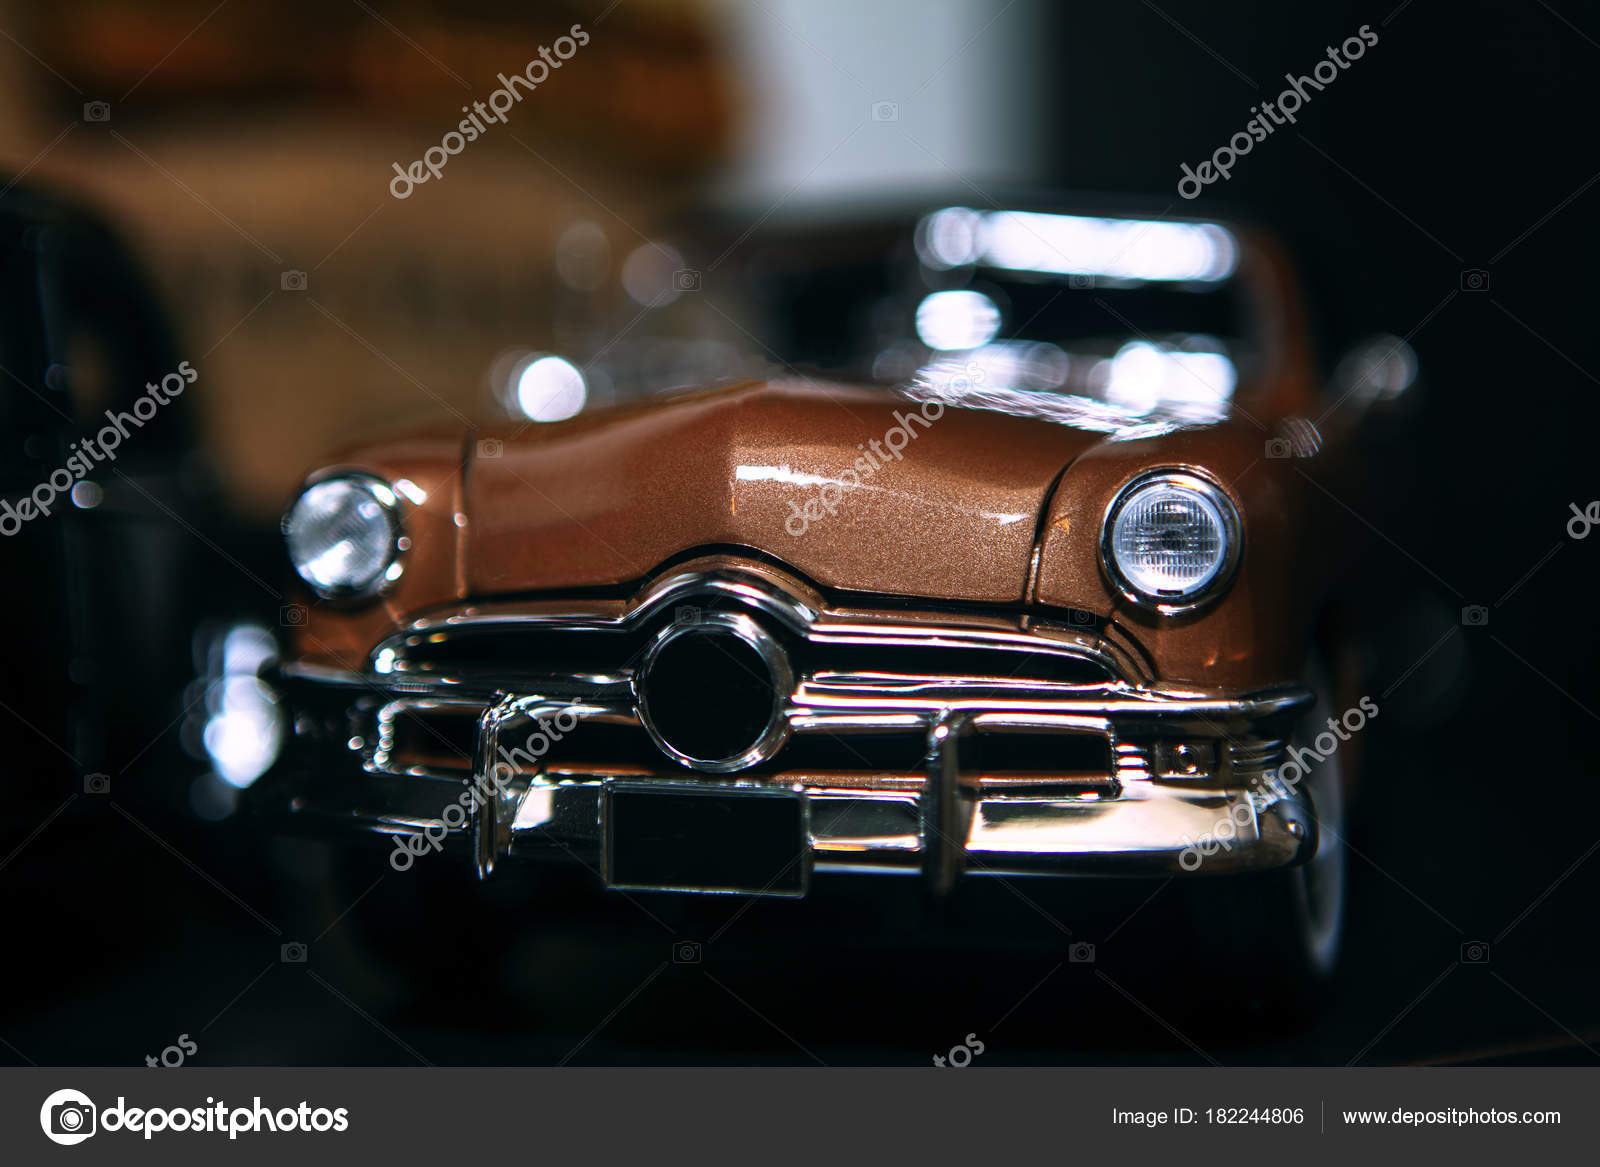 Toy Vintage Model Car Headlights Stock Photo C Russieseo 182244806